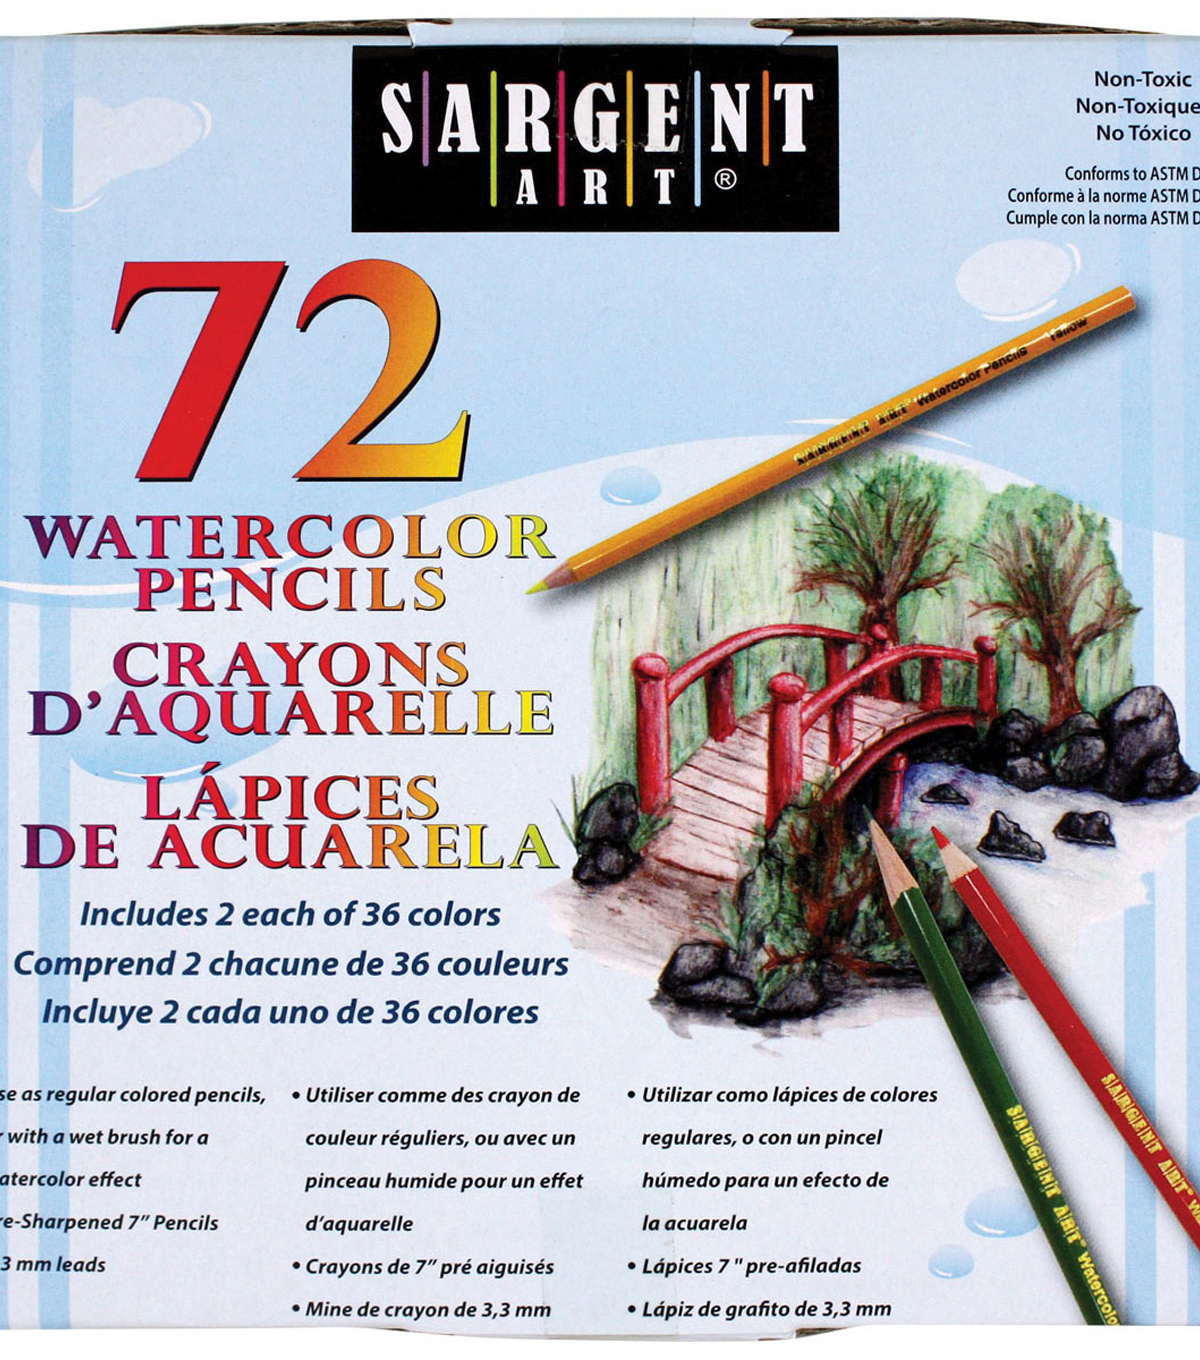 Sargent Art Watercolor Pencils 72 Pack